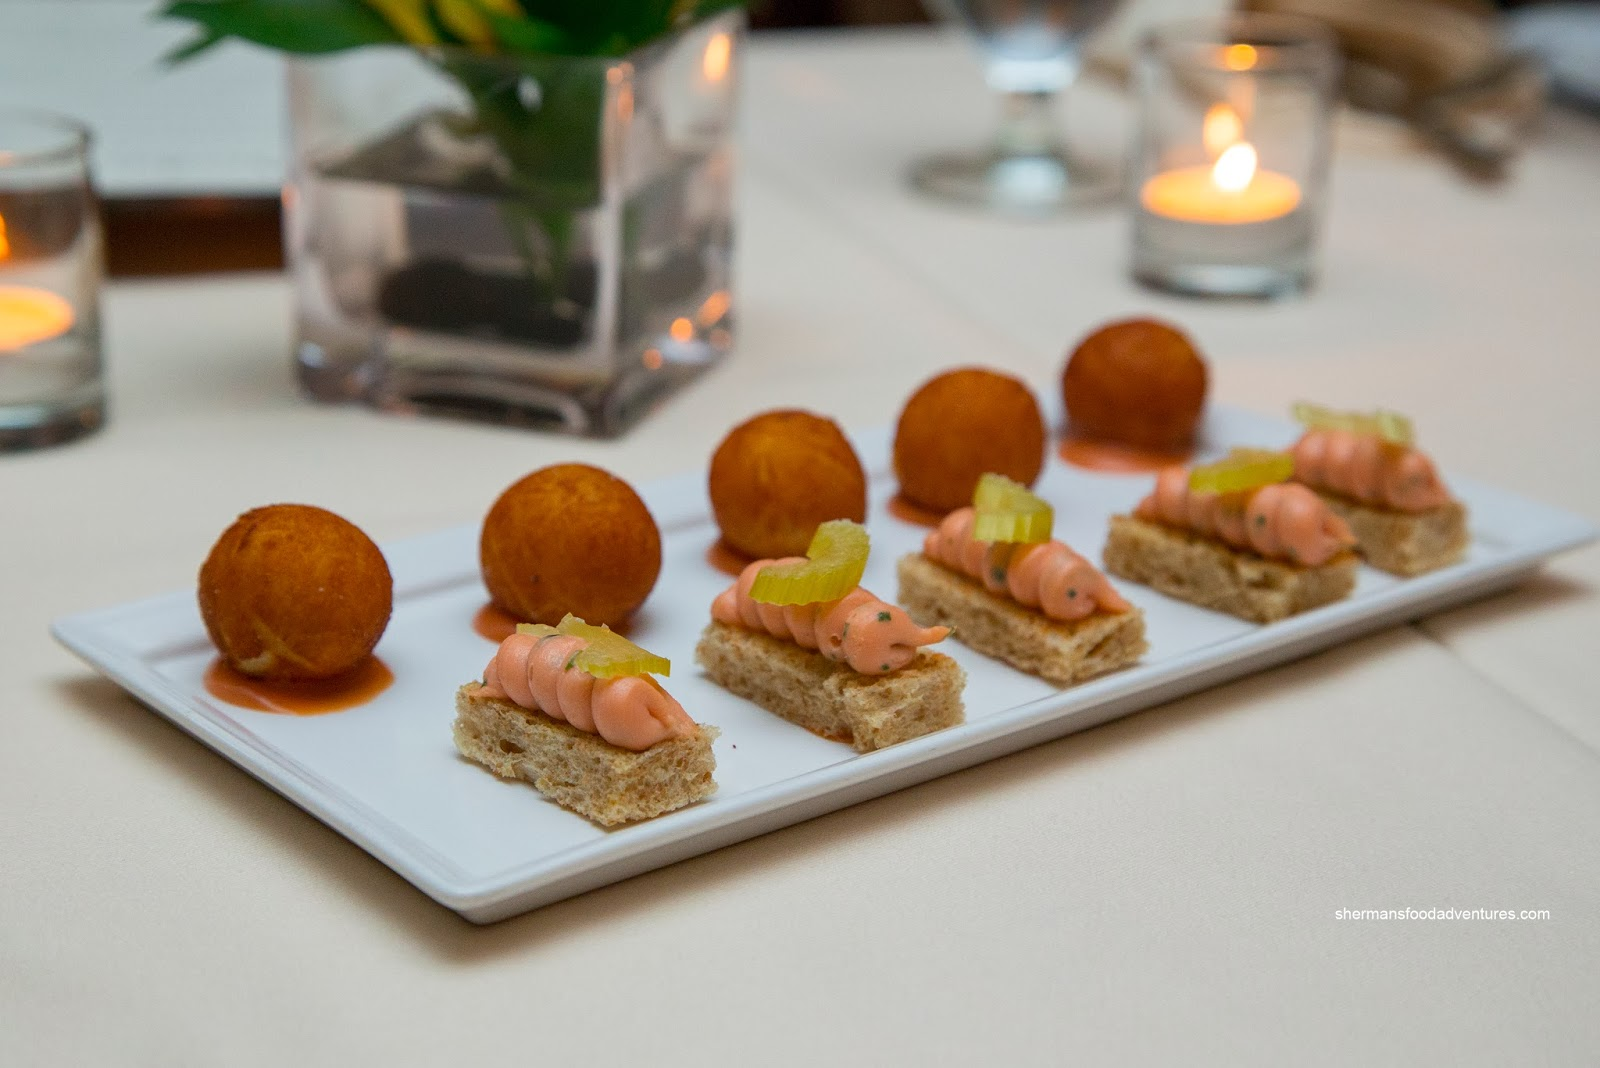 Sherman 39 s food adventures bacchus restaurant and lounge for Amuse bouche cuisine